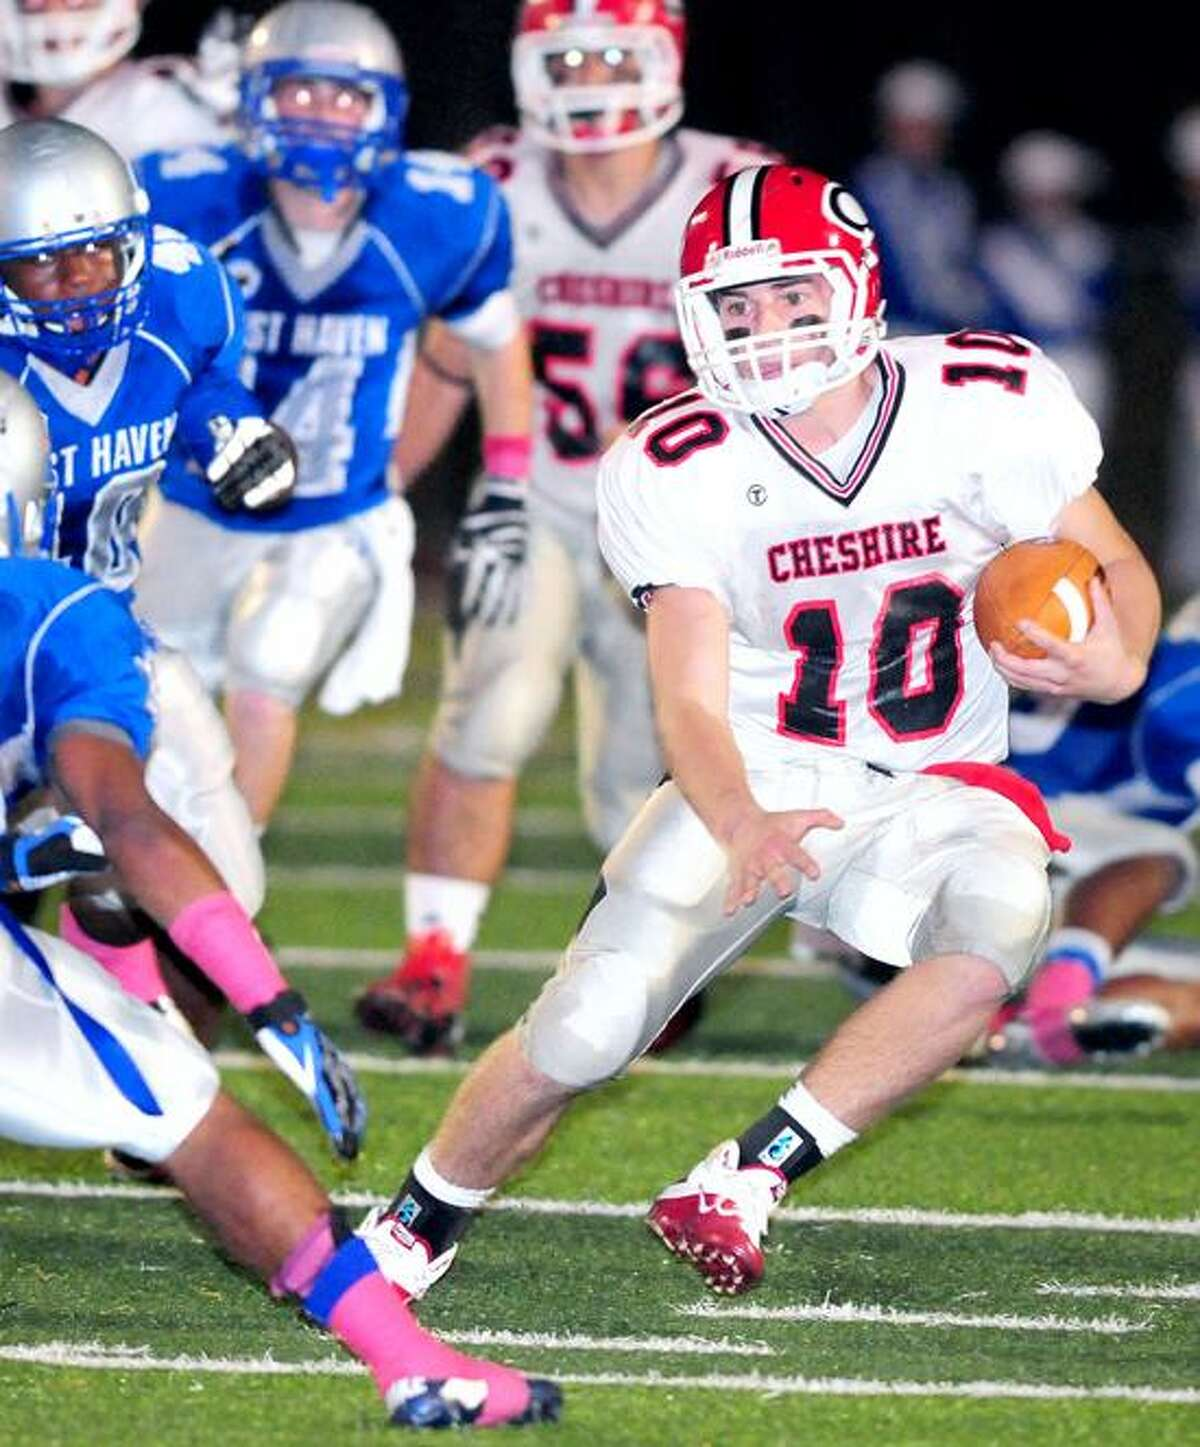 Cheshire quarterback Vincent Sansone, right, runs against West Haven in the first half of a regular-season game. Cheshire plays at Southington on Thursday at 10:30 a.m. Photo by Arnold Gold/New Haven Register.